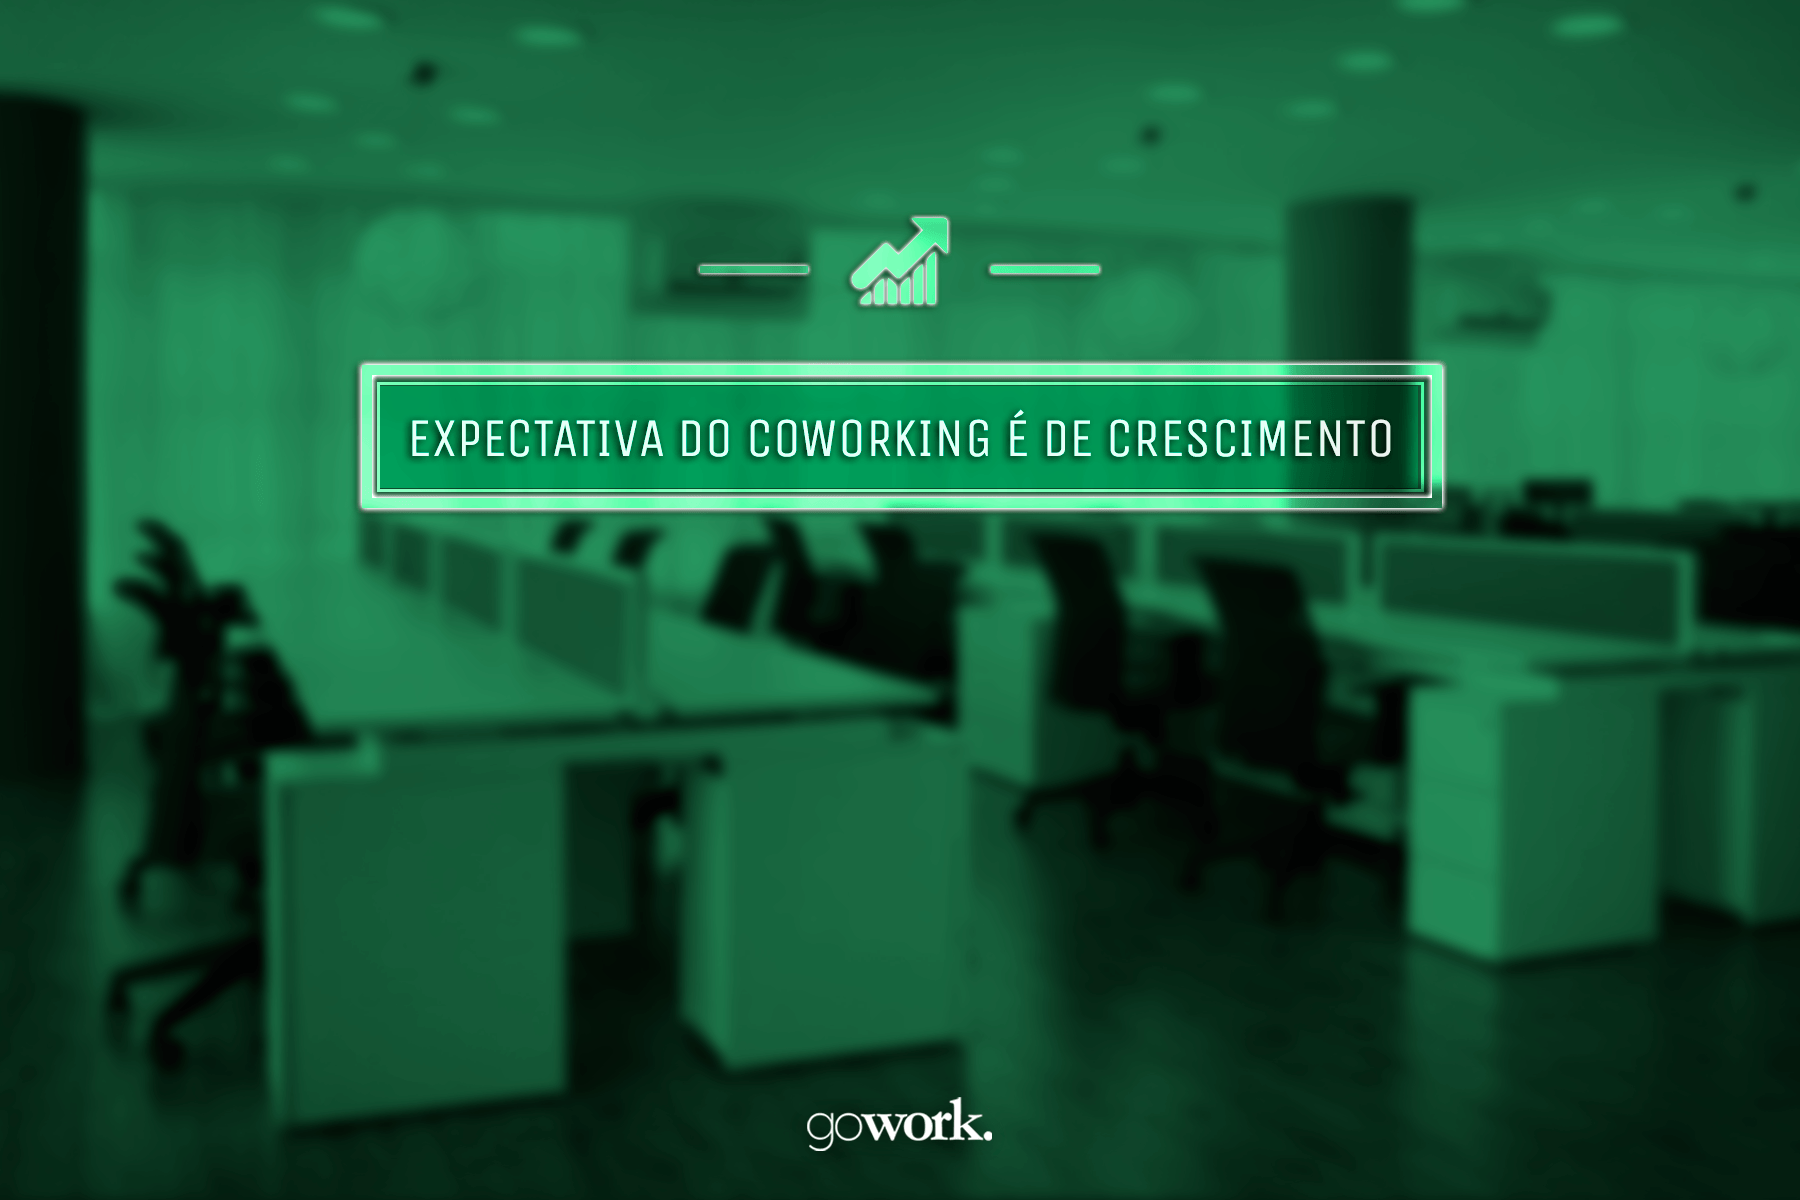 Coworking_Gowork_16-11-2015_Previsao